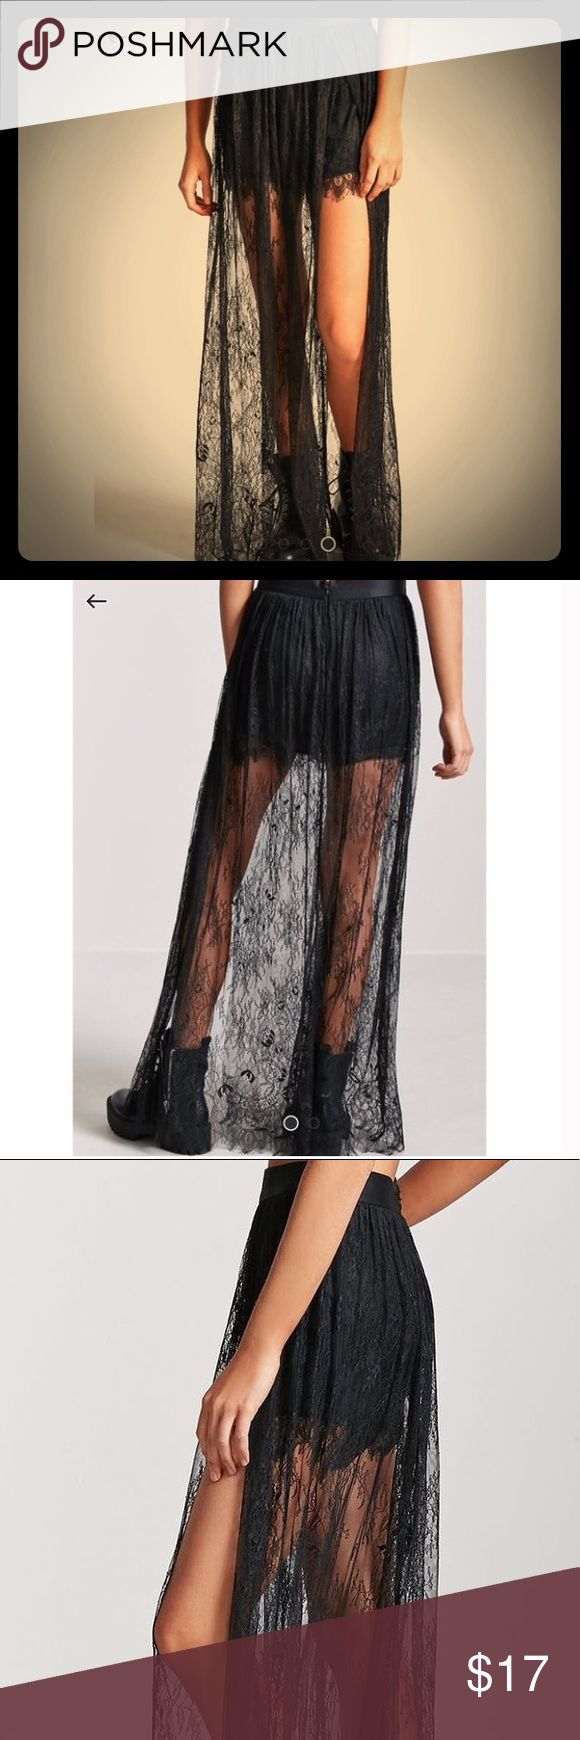 F21 Sheer Lace Maxi Skirt with Shorts! D&G Style! 2018 Forever 21 'Contemporary Collection' *NWT* Black sheer Chantilly eyelash lace maxi skirt, satin waistband, concealed zipper, stunning high slit on side, & full coverage silk with lace overlay boy shorts.   The design, fit, and quality of fabric replicates high end runway styles such as D&G identically.  Dress up or down. Tights or leggings are complimentary for Fall/Winter wear.  Sz:XL *Sizing is more comparable to a LARGE or 8-10…